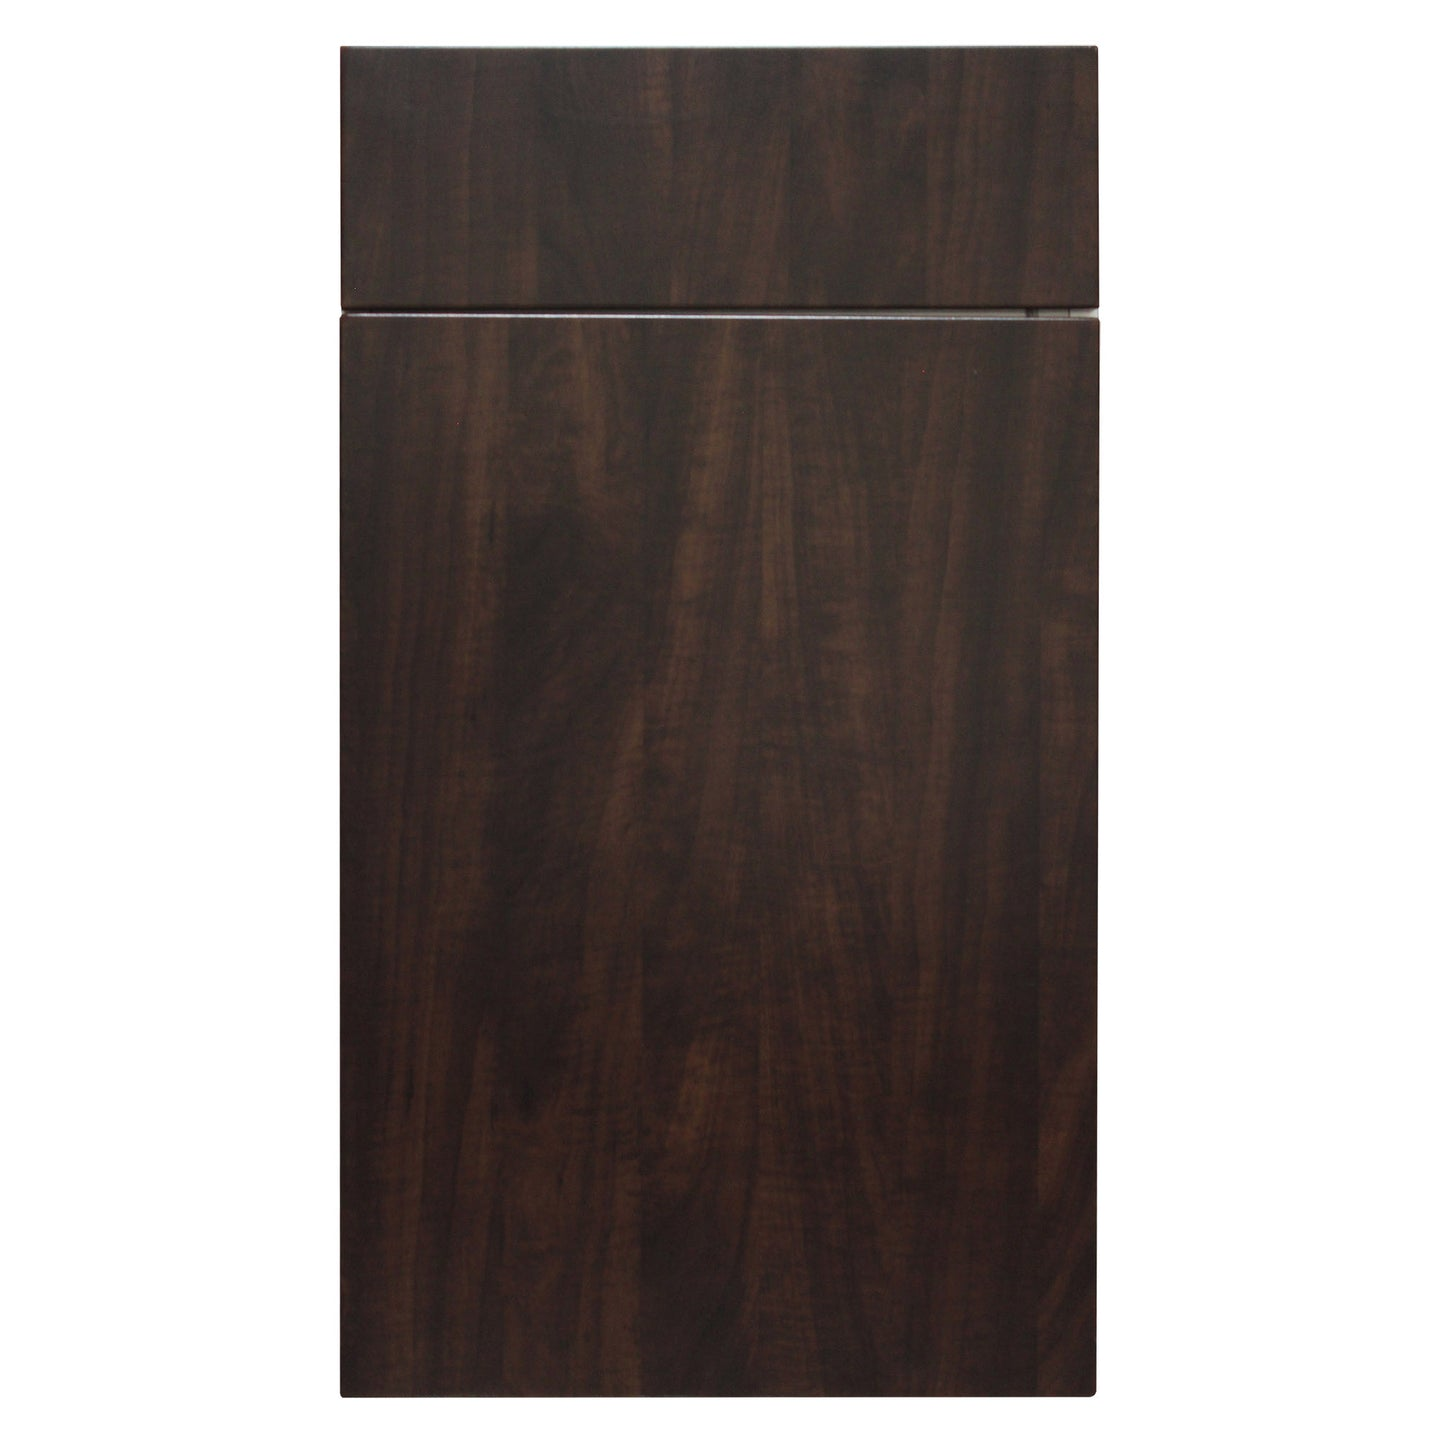 Chocolate German Wood Grain Door - Quality Kitchens For Less